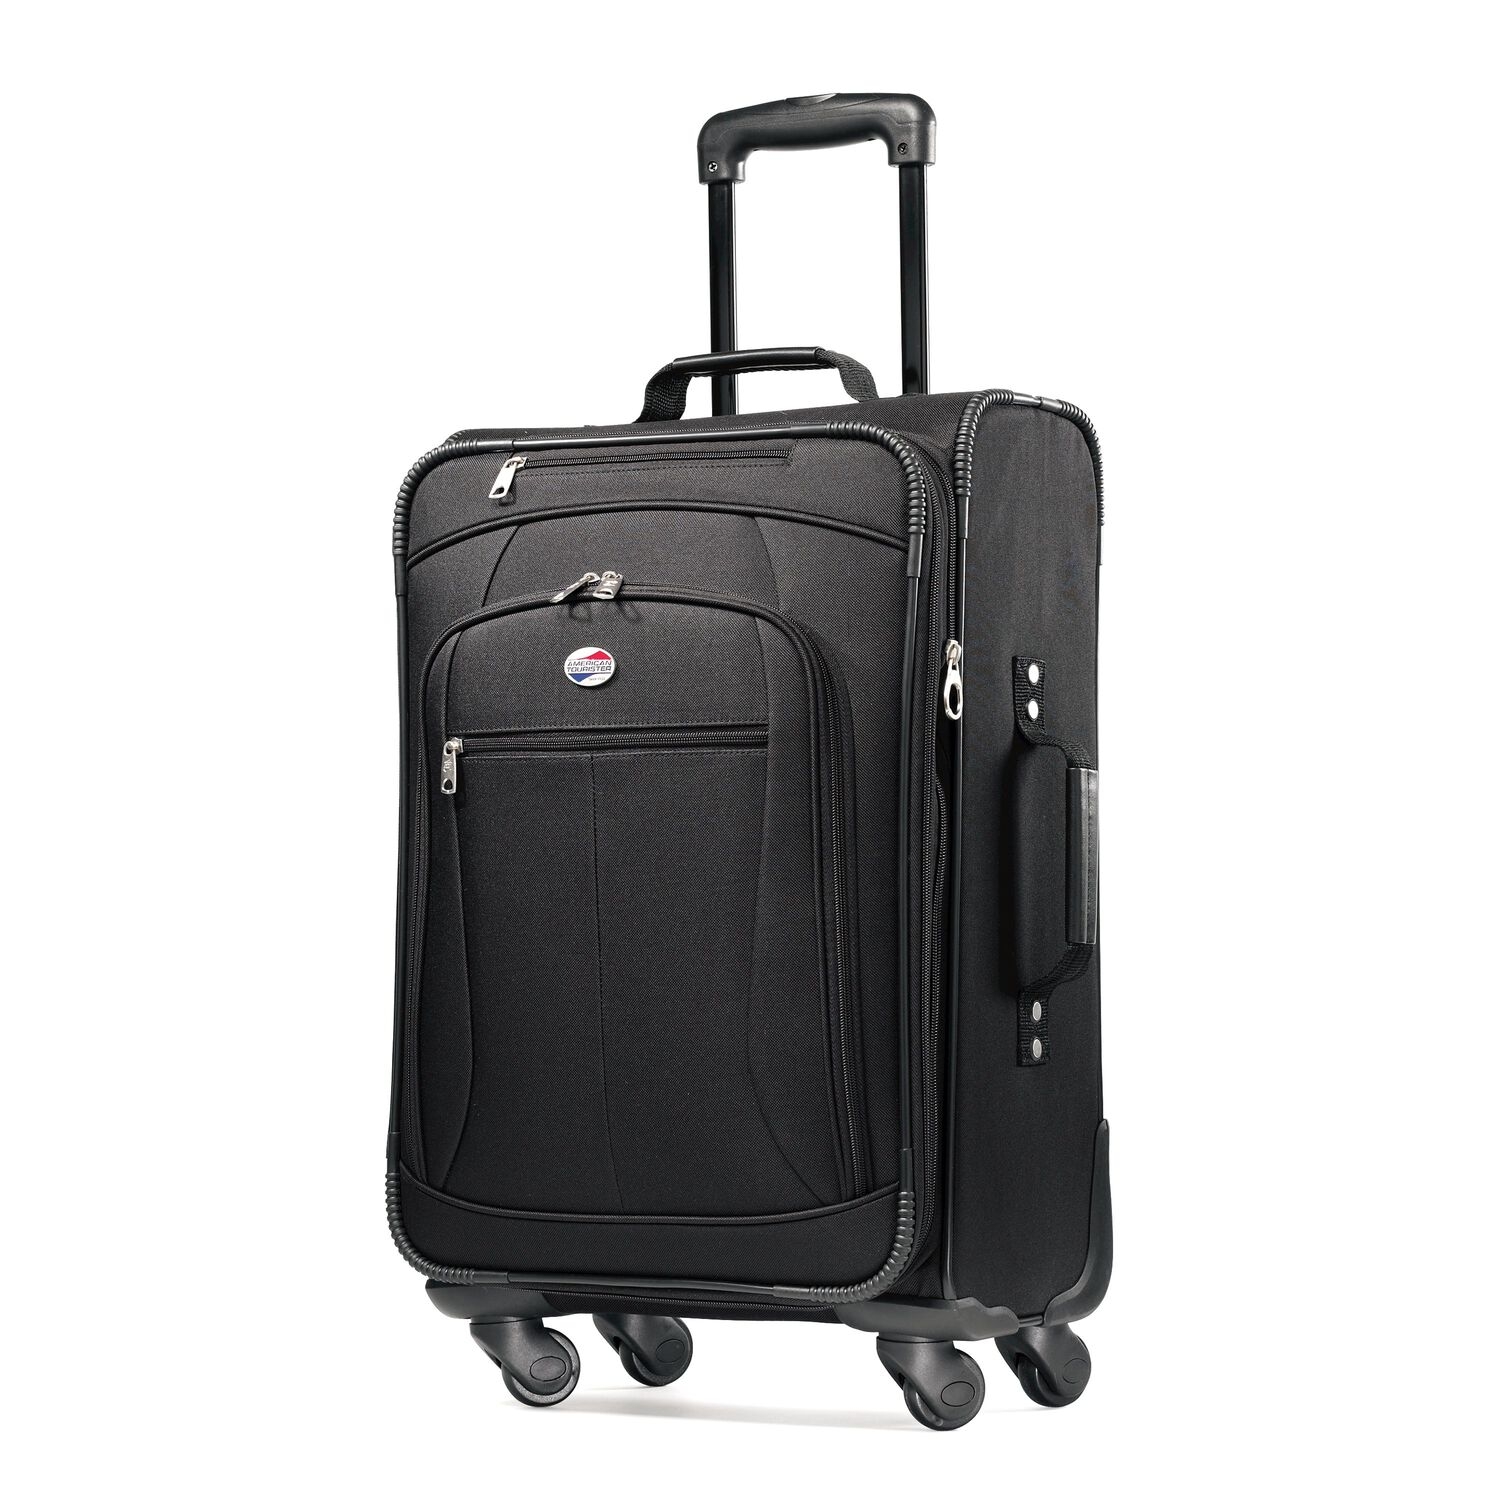 american tourister pop 3 piece spinner luggage set. Black Bedroom Furniture Sets. Home Design Ideas